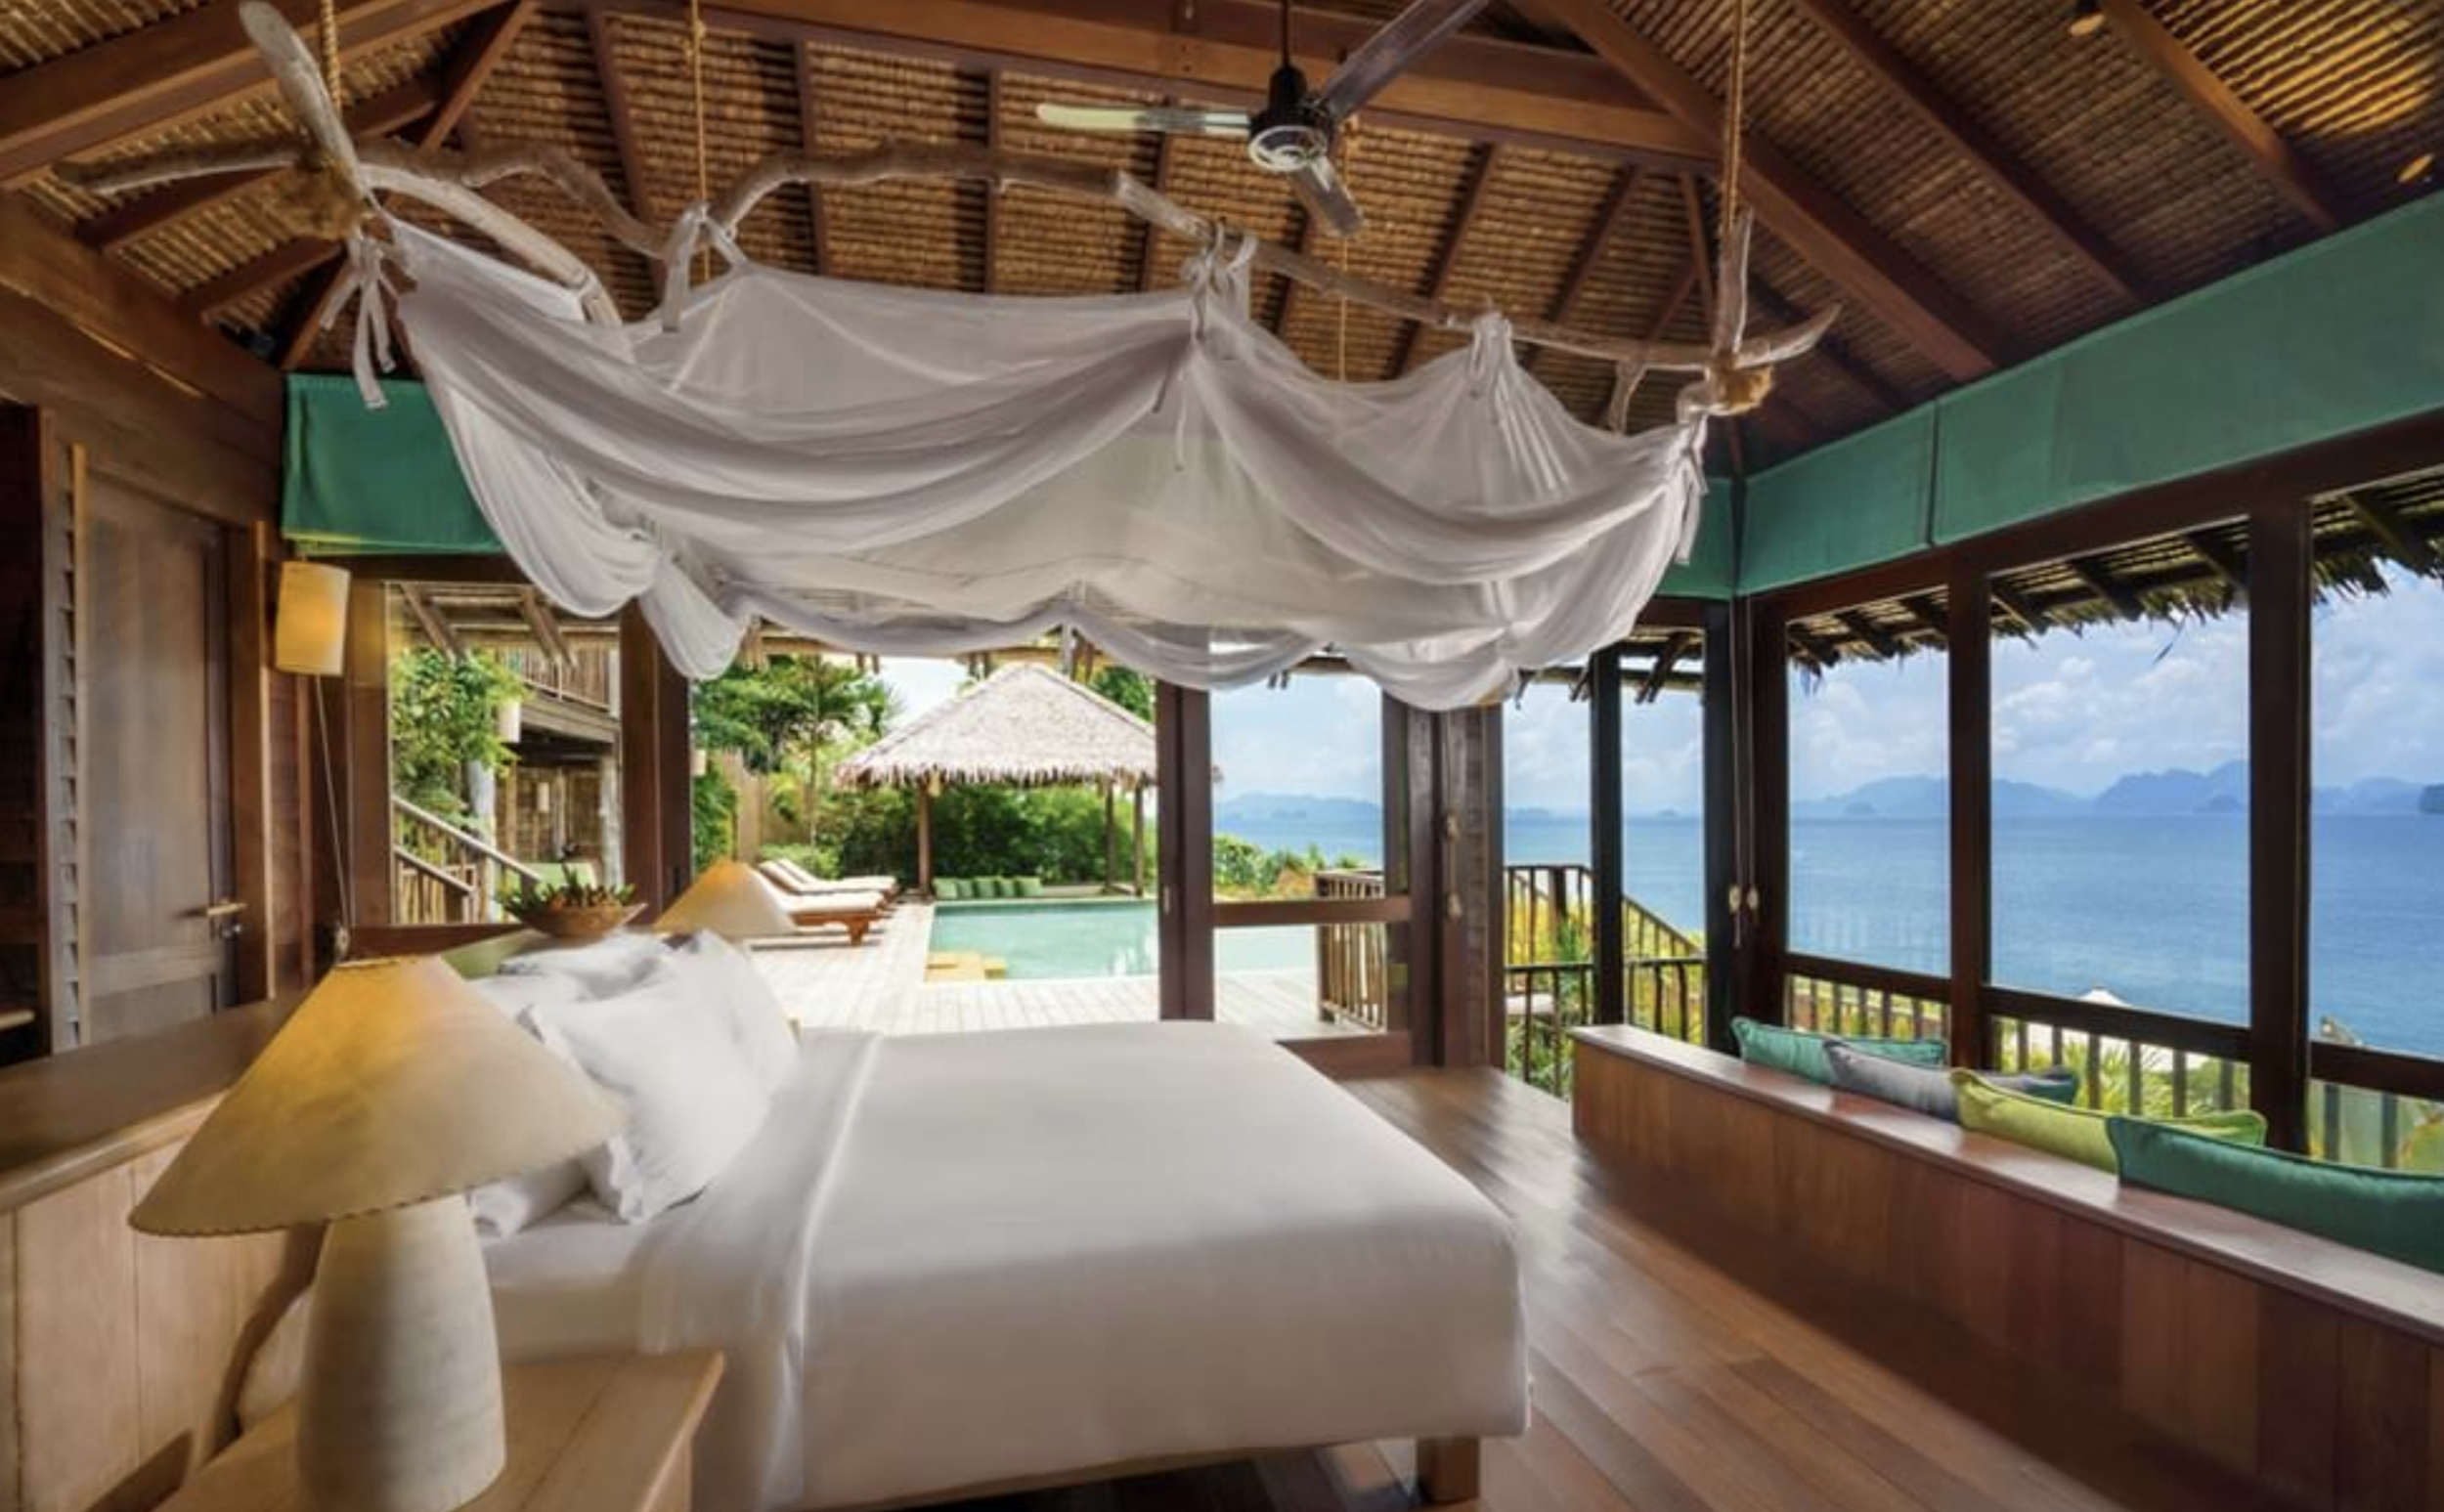 Six Senses Yao Noi (Phang Nga Bay, Thailand)     AMENITIES:  This is a very private location with optimal personal space and a variation of exotic accommodations.